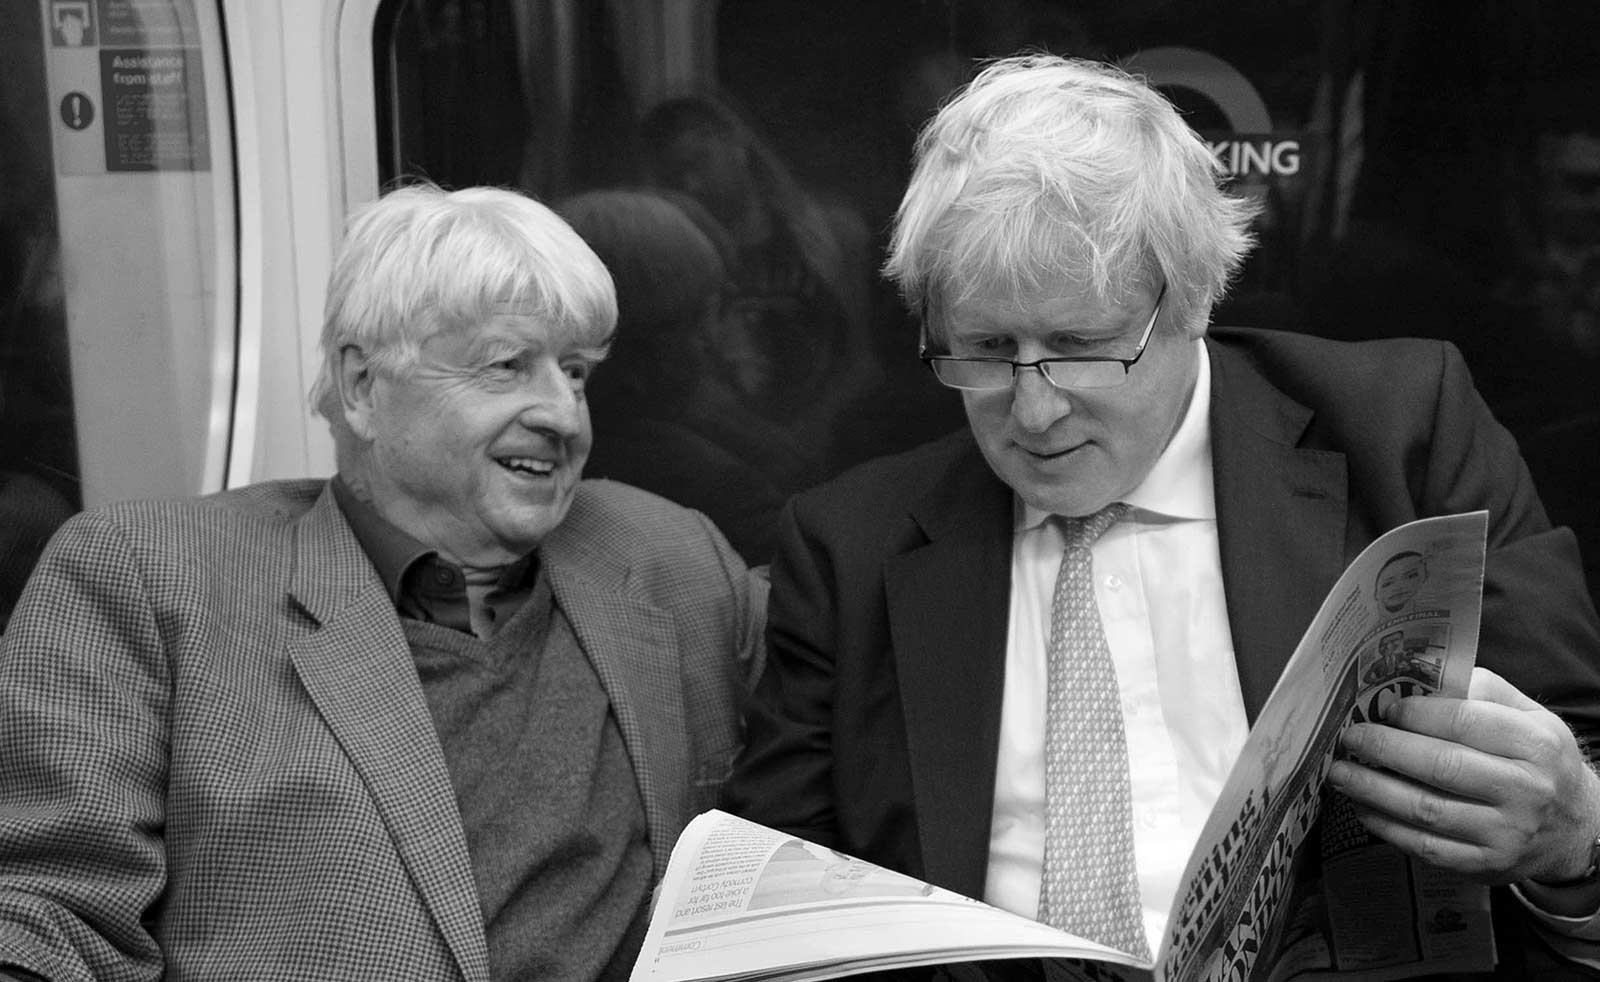 BORIS JOHNSON'S FATHER AND THE MI6 CONNECTION